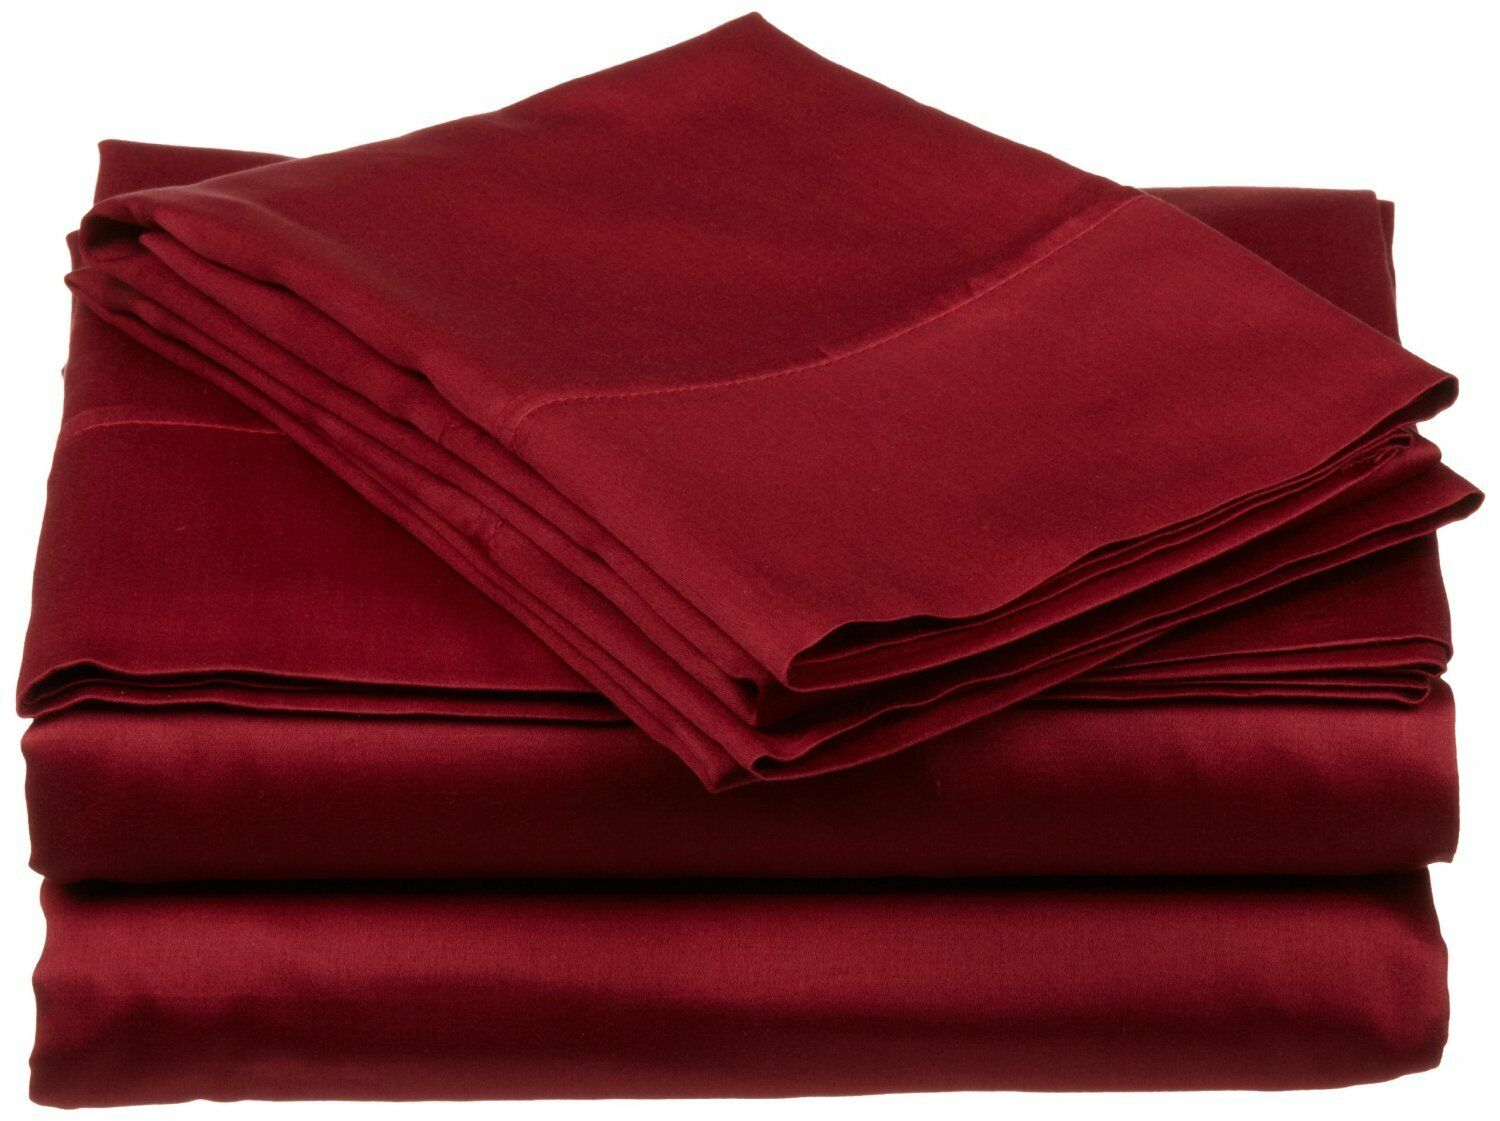 USA Bedding Item 100% Cotton 400-TC Burgundy Solid Wrinkle Free All Size